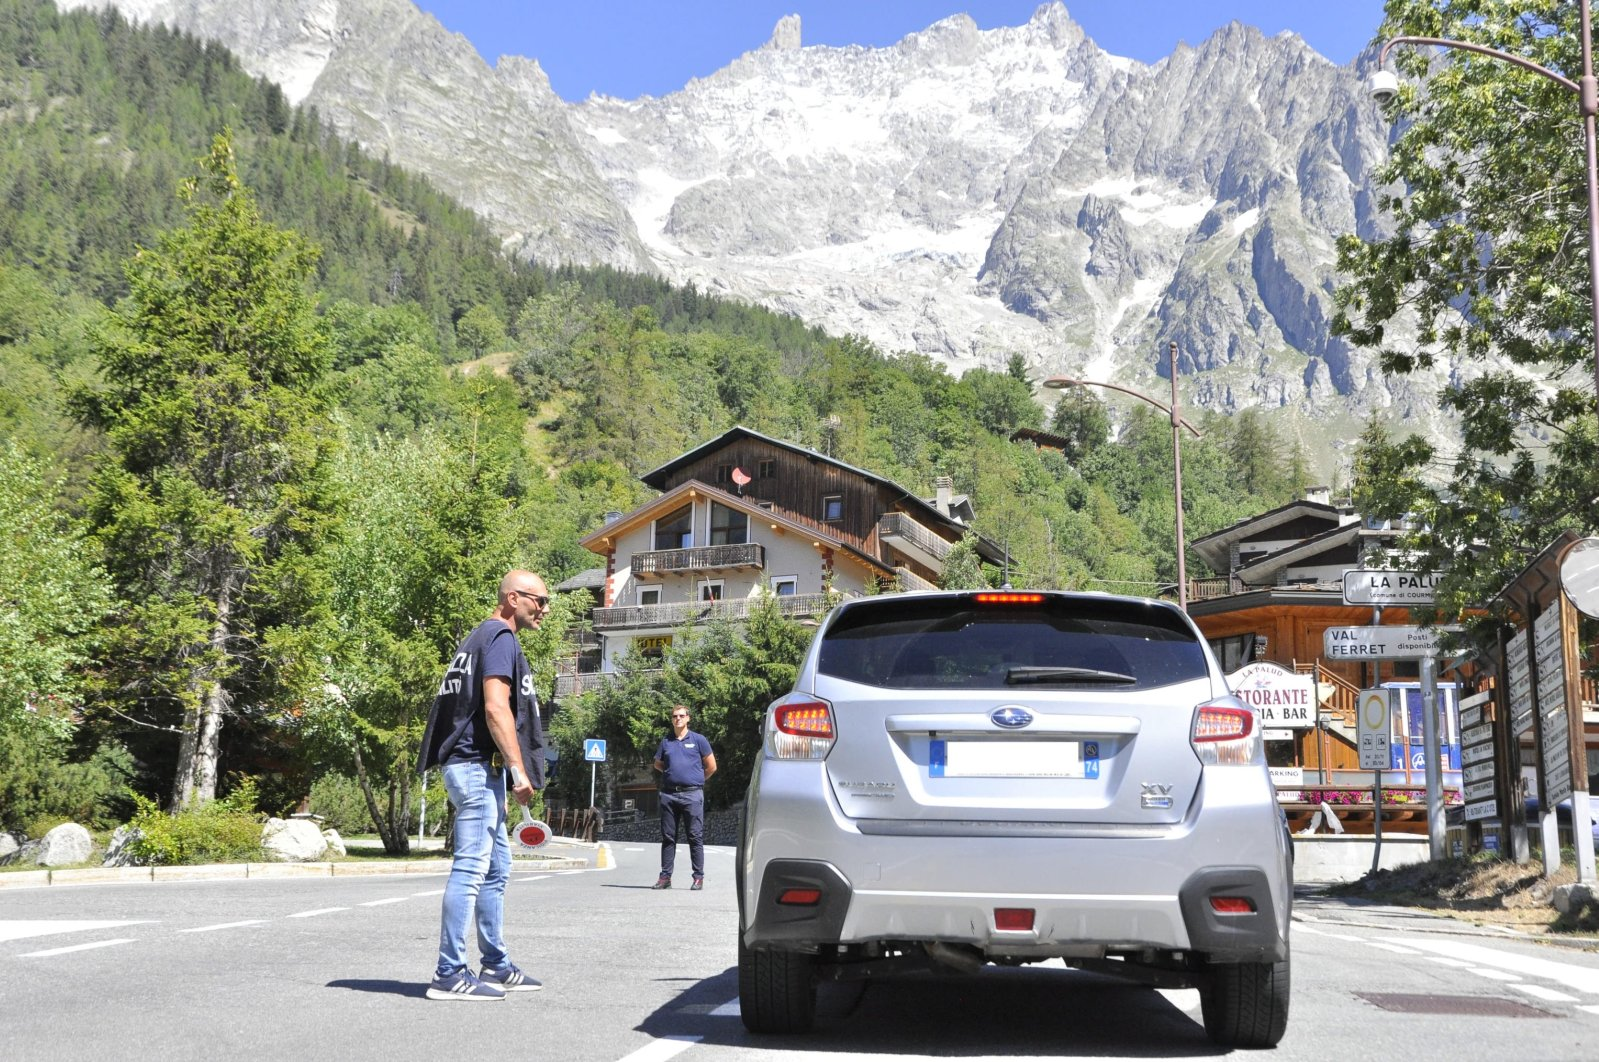 Residents and tourists who occupy about 30 houses in the lower part of the Val Ferret (Courmayeur) began evacuating this morning due to the alert for the collapse of a part of the Planpincieux glacier in Aosta Valley region, northwestern Italy, Aug. 6, 2020. (EPA Photo)